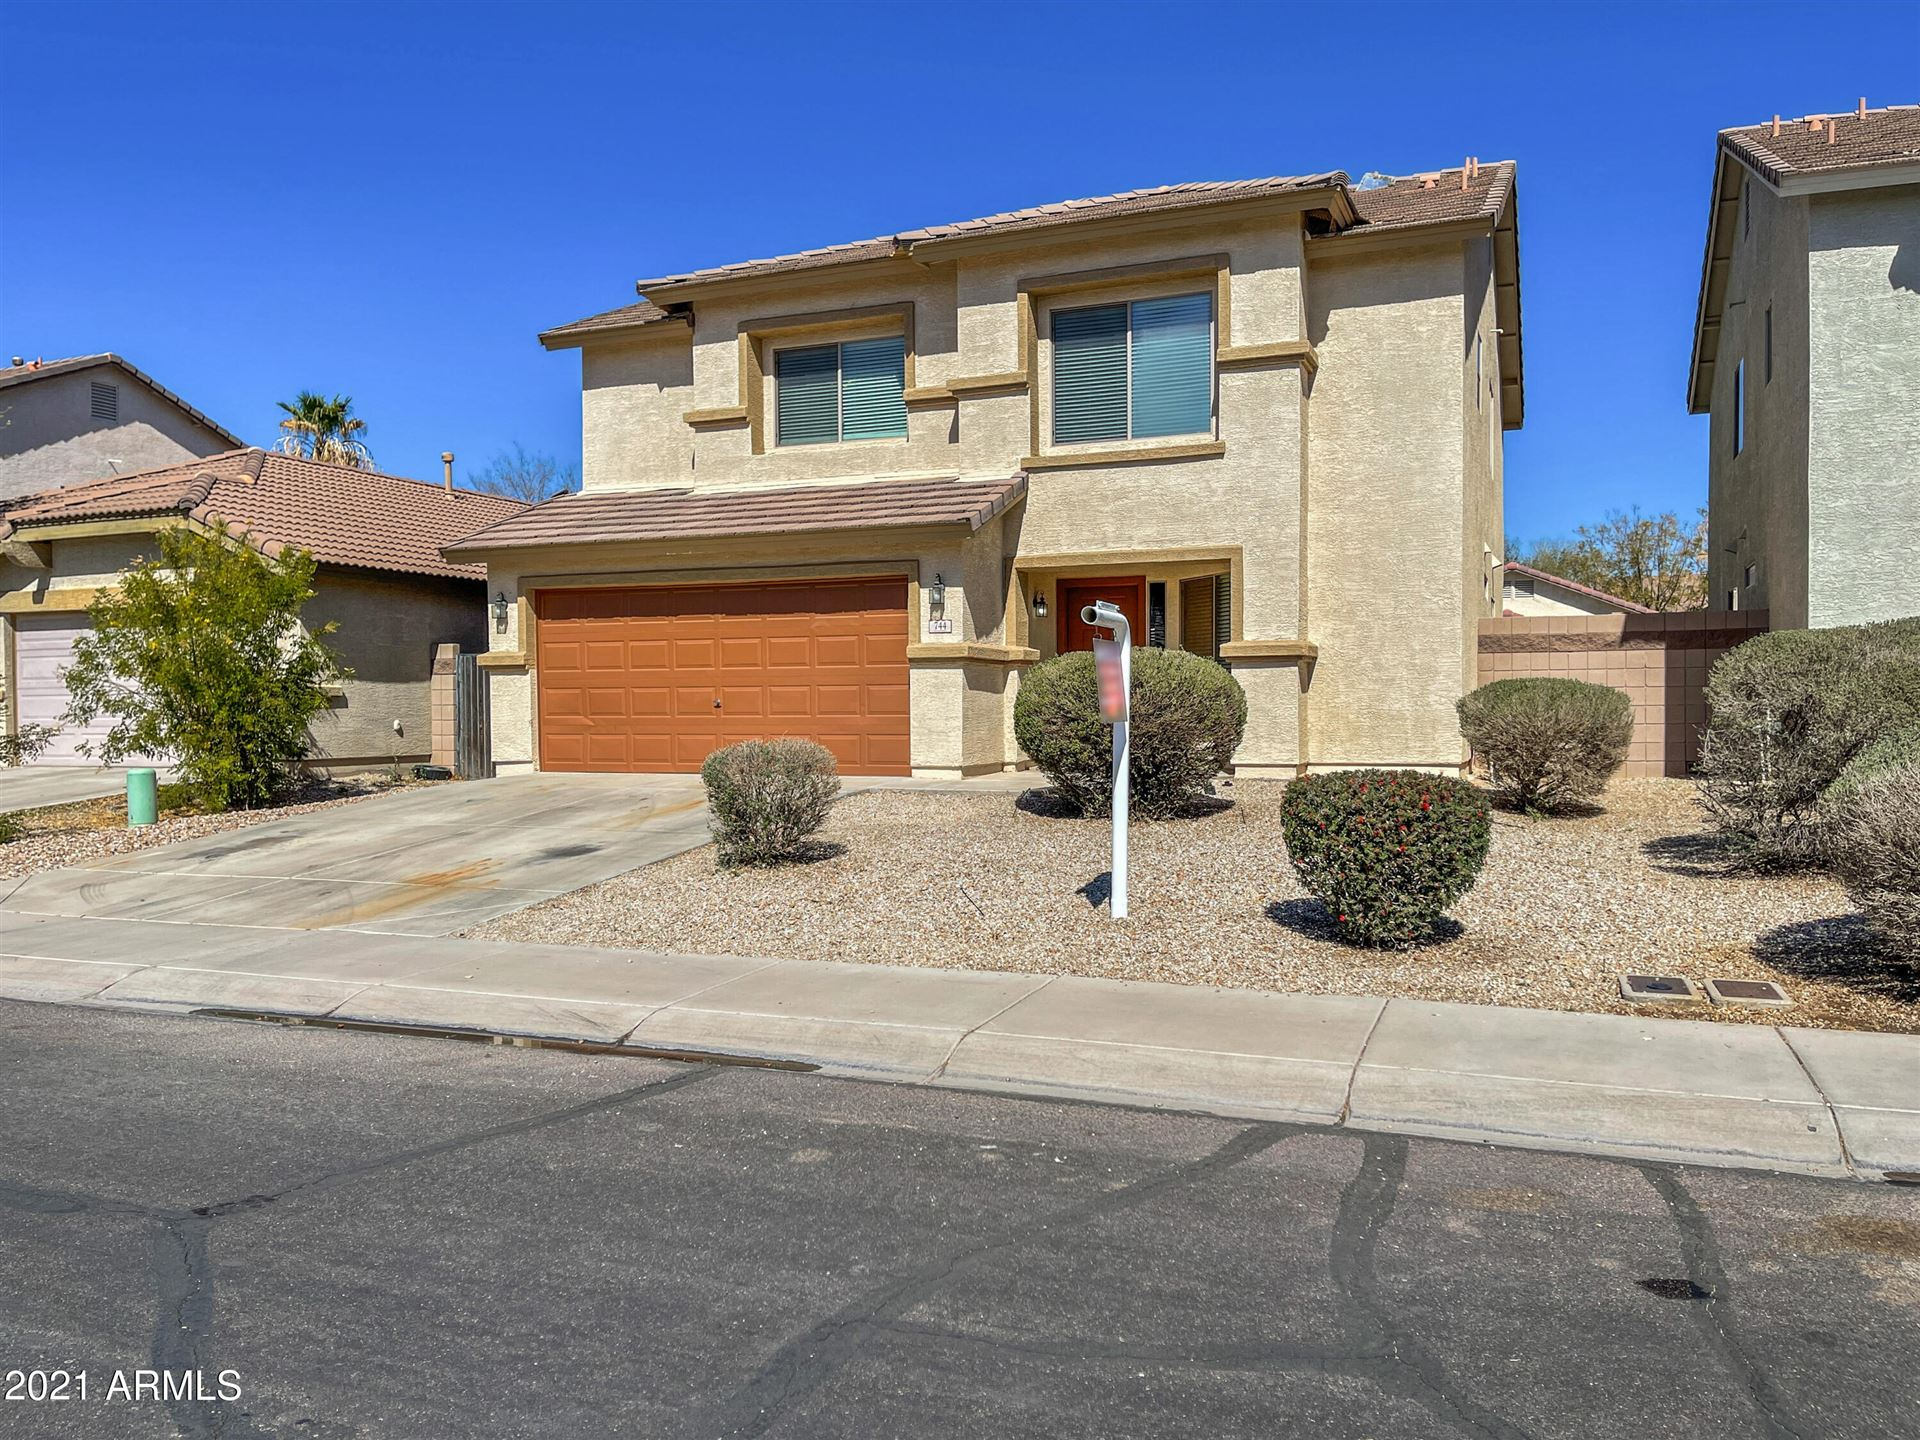 Photo of 744 E ANASTASIA Street, San Tan Valley, AZ 85140 (MLS # 6202261)